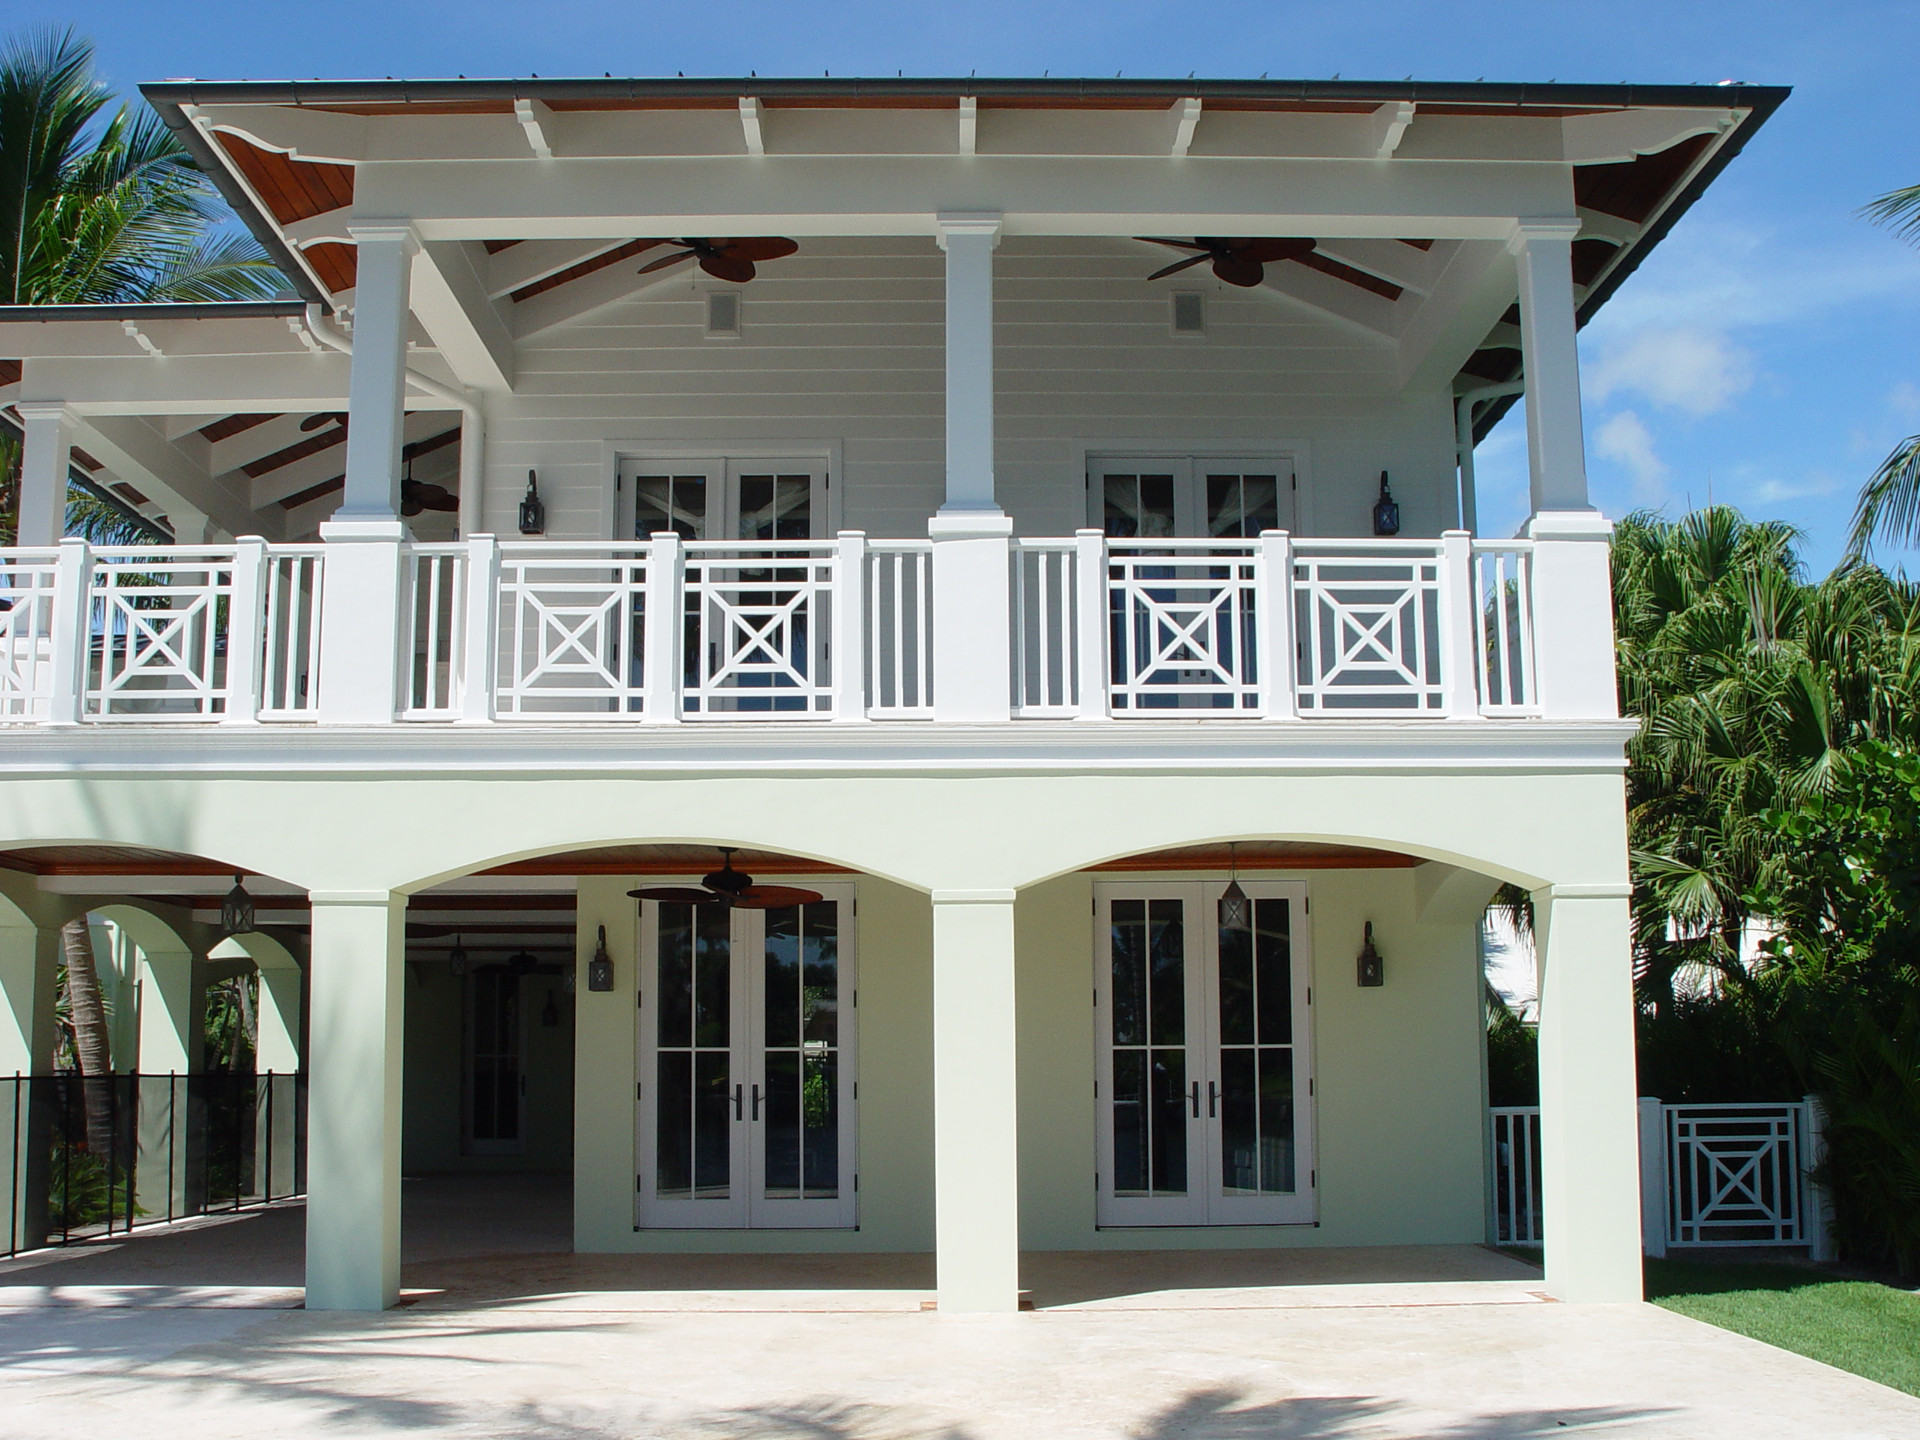 2 story porch detail.JPG